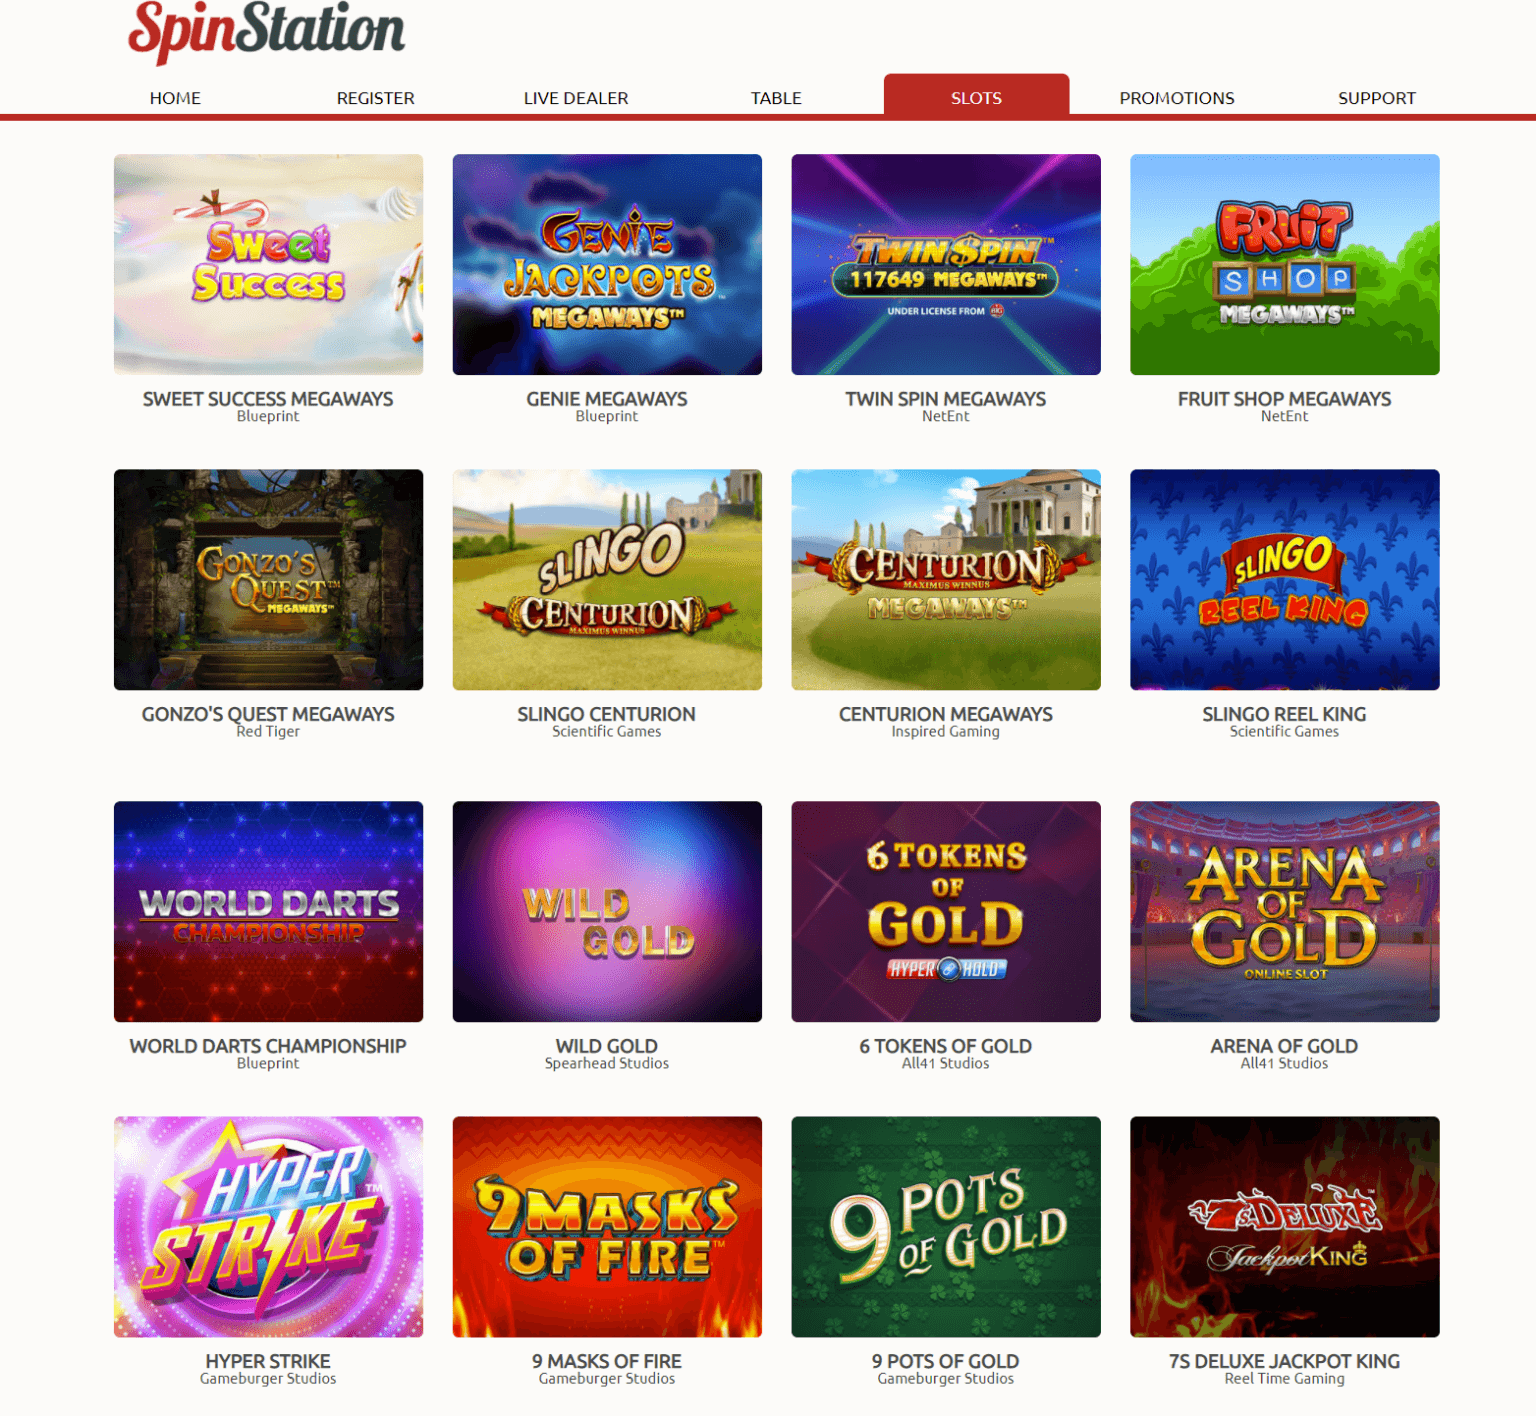 A selection of the various slots you can play at Spin Station